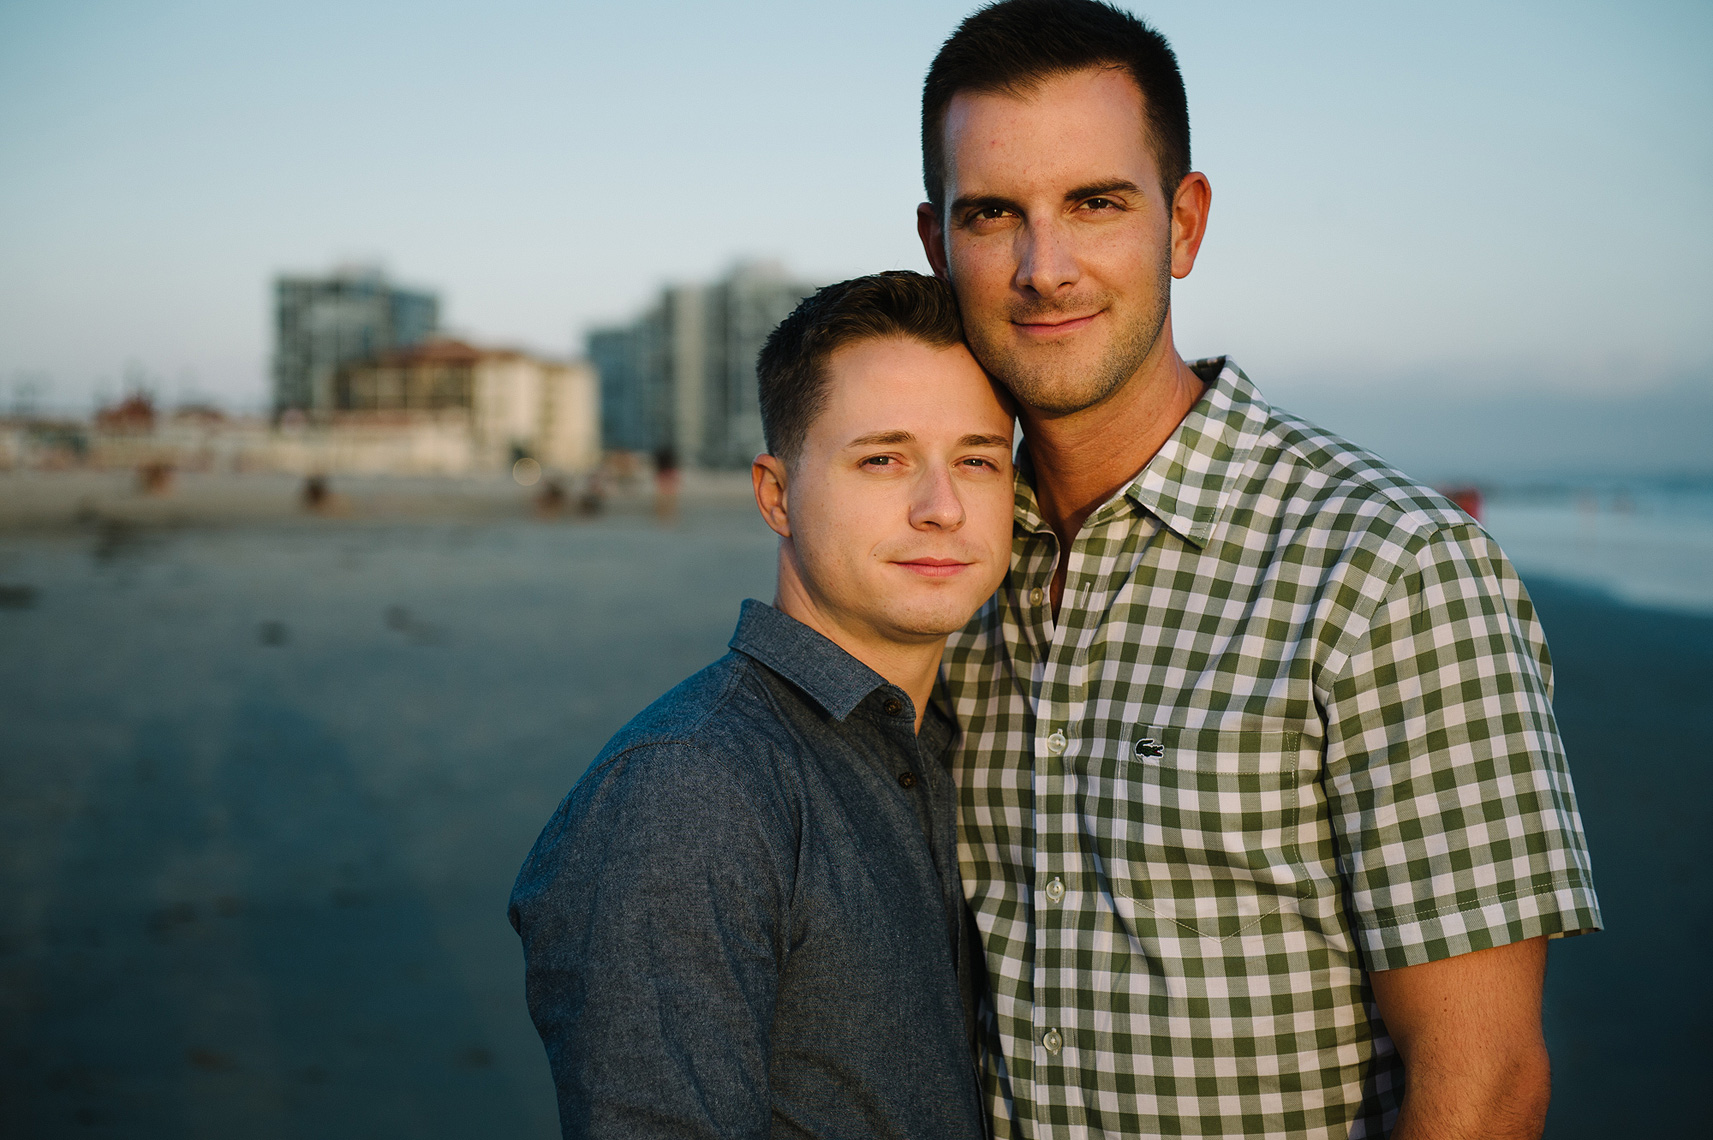 16-coronado-same-sex-engagement-photo.jpg